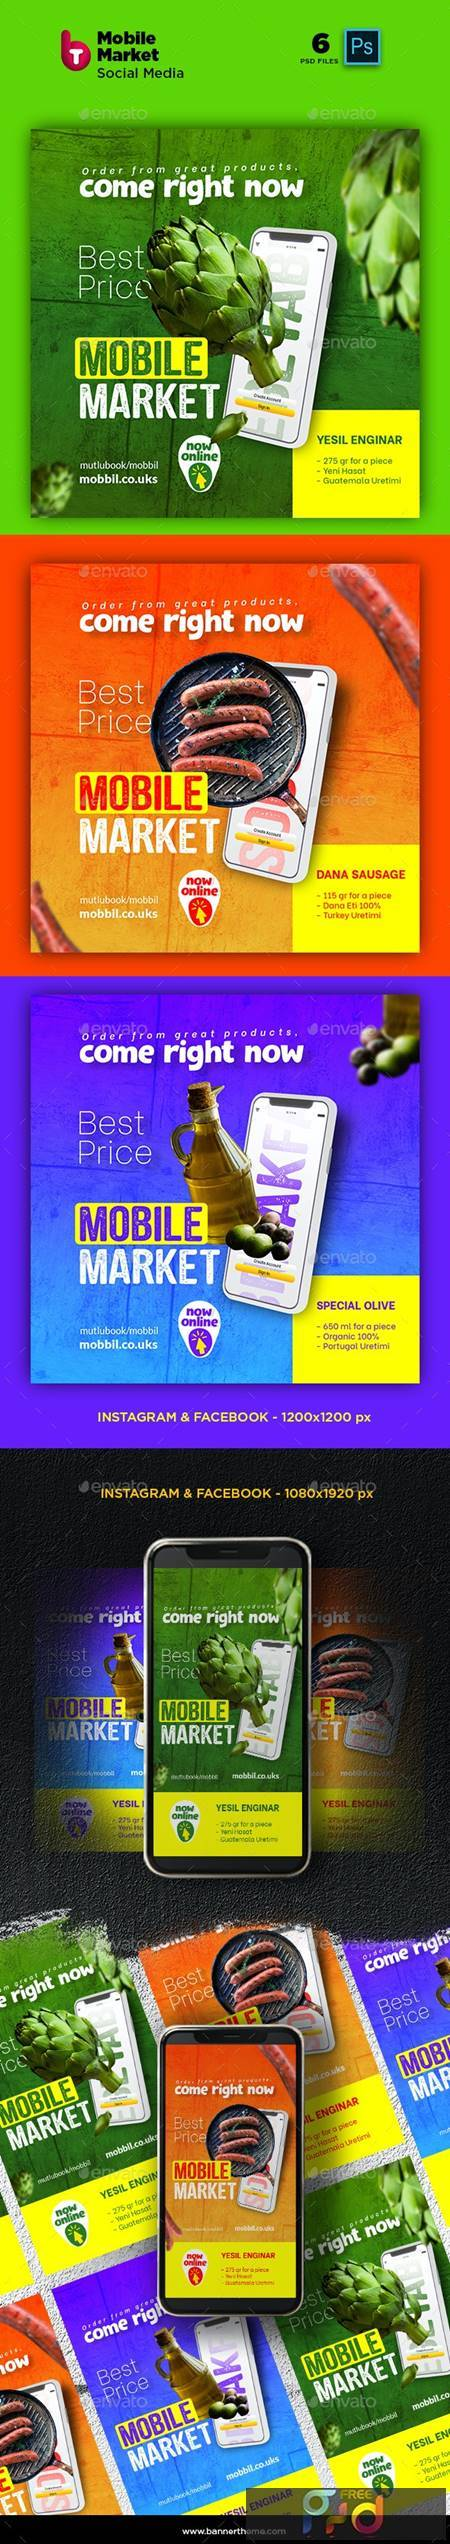 Mobile Market Social Media Post and Stories 26278797 1